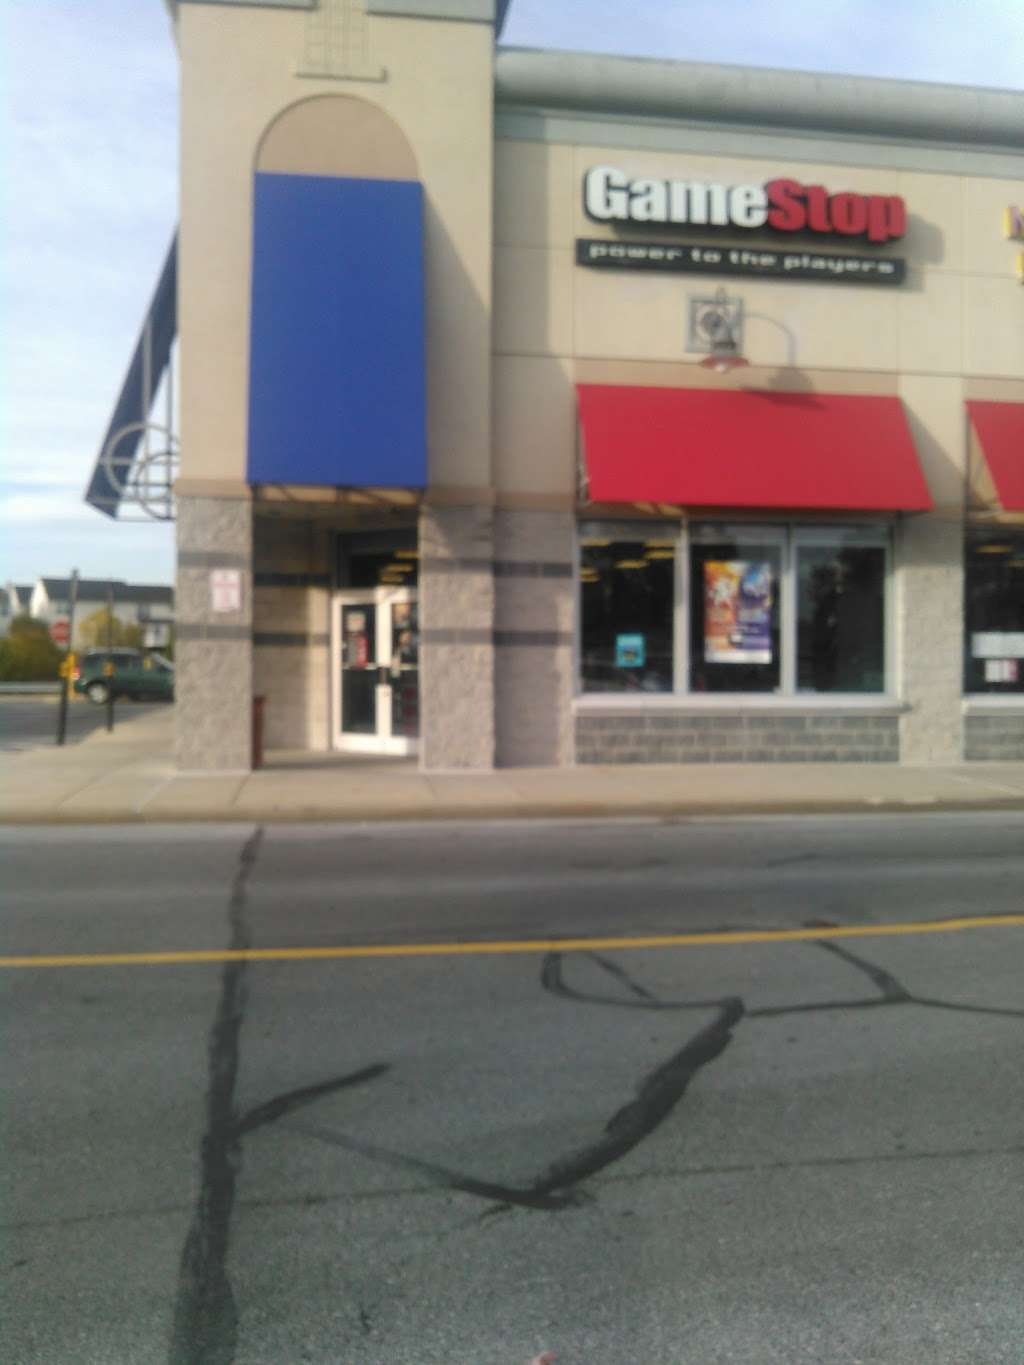 GameStop Prestige - electronics store  | Photo 3 of 7 | Address: 17604 Garland Groh Blvd, Hagerstown, MD 21740, USA | Phone: (301) 733-1093